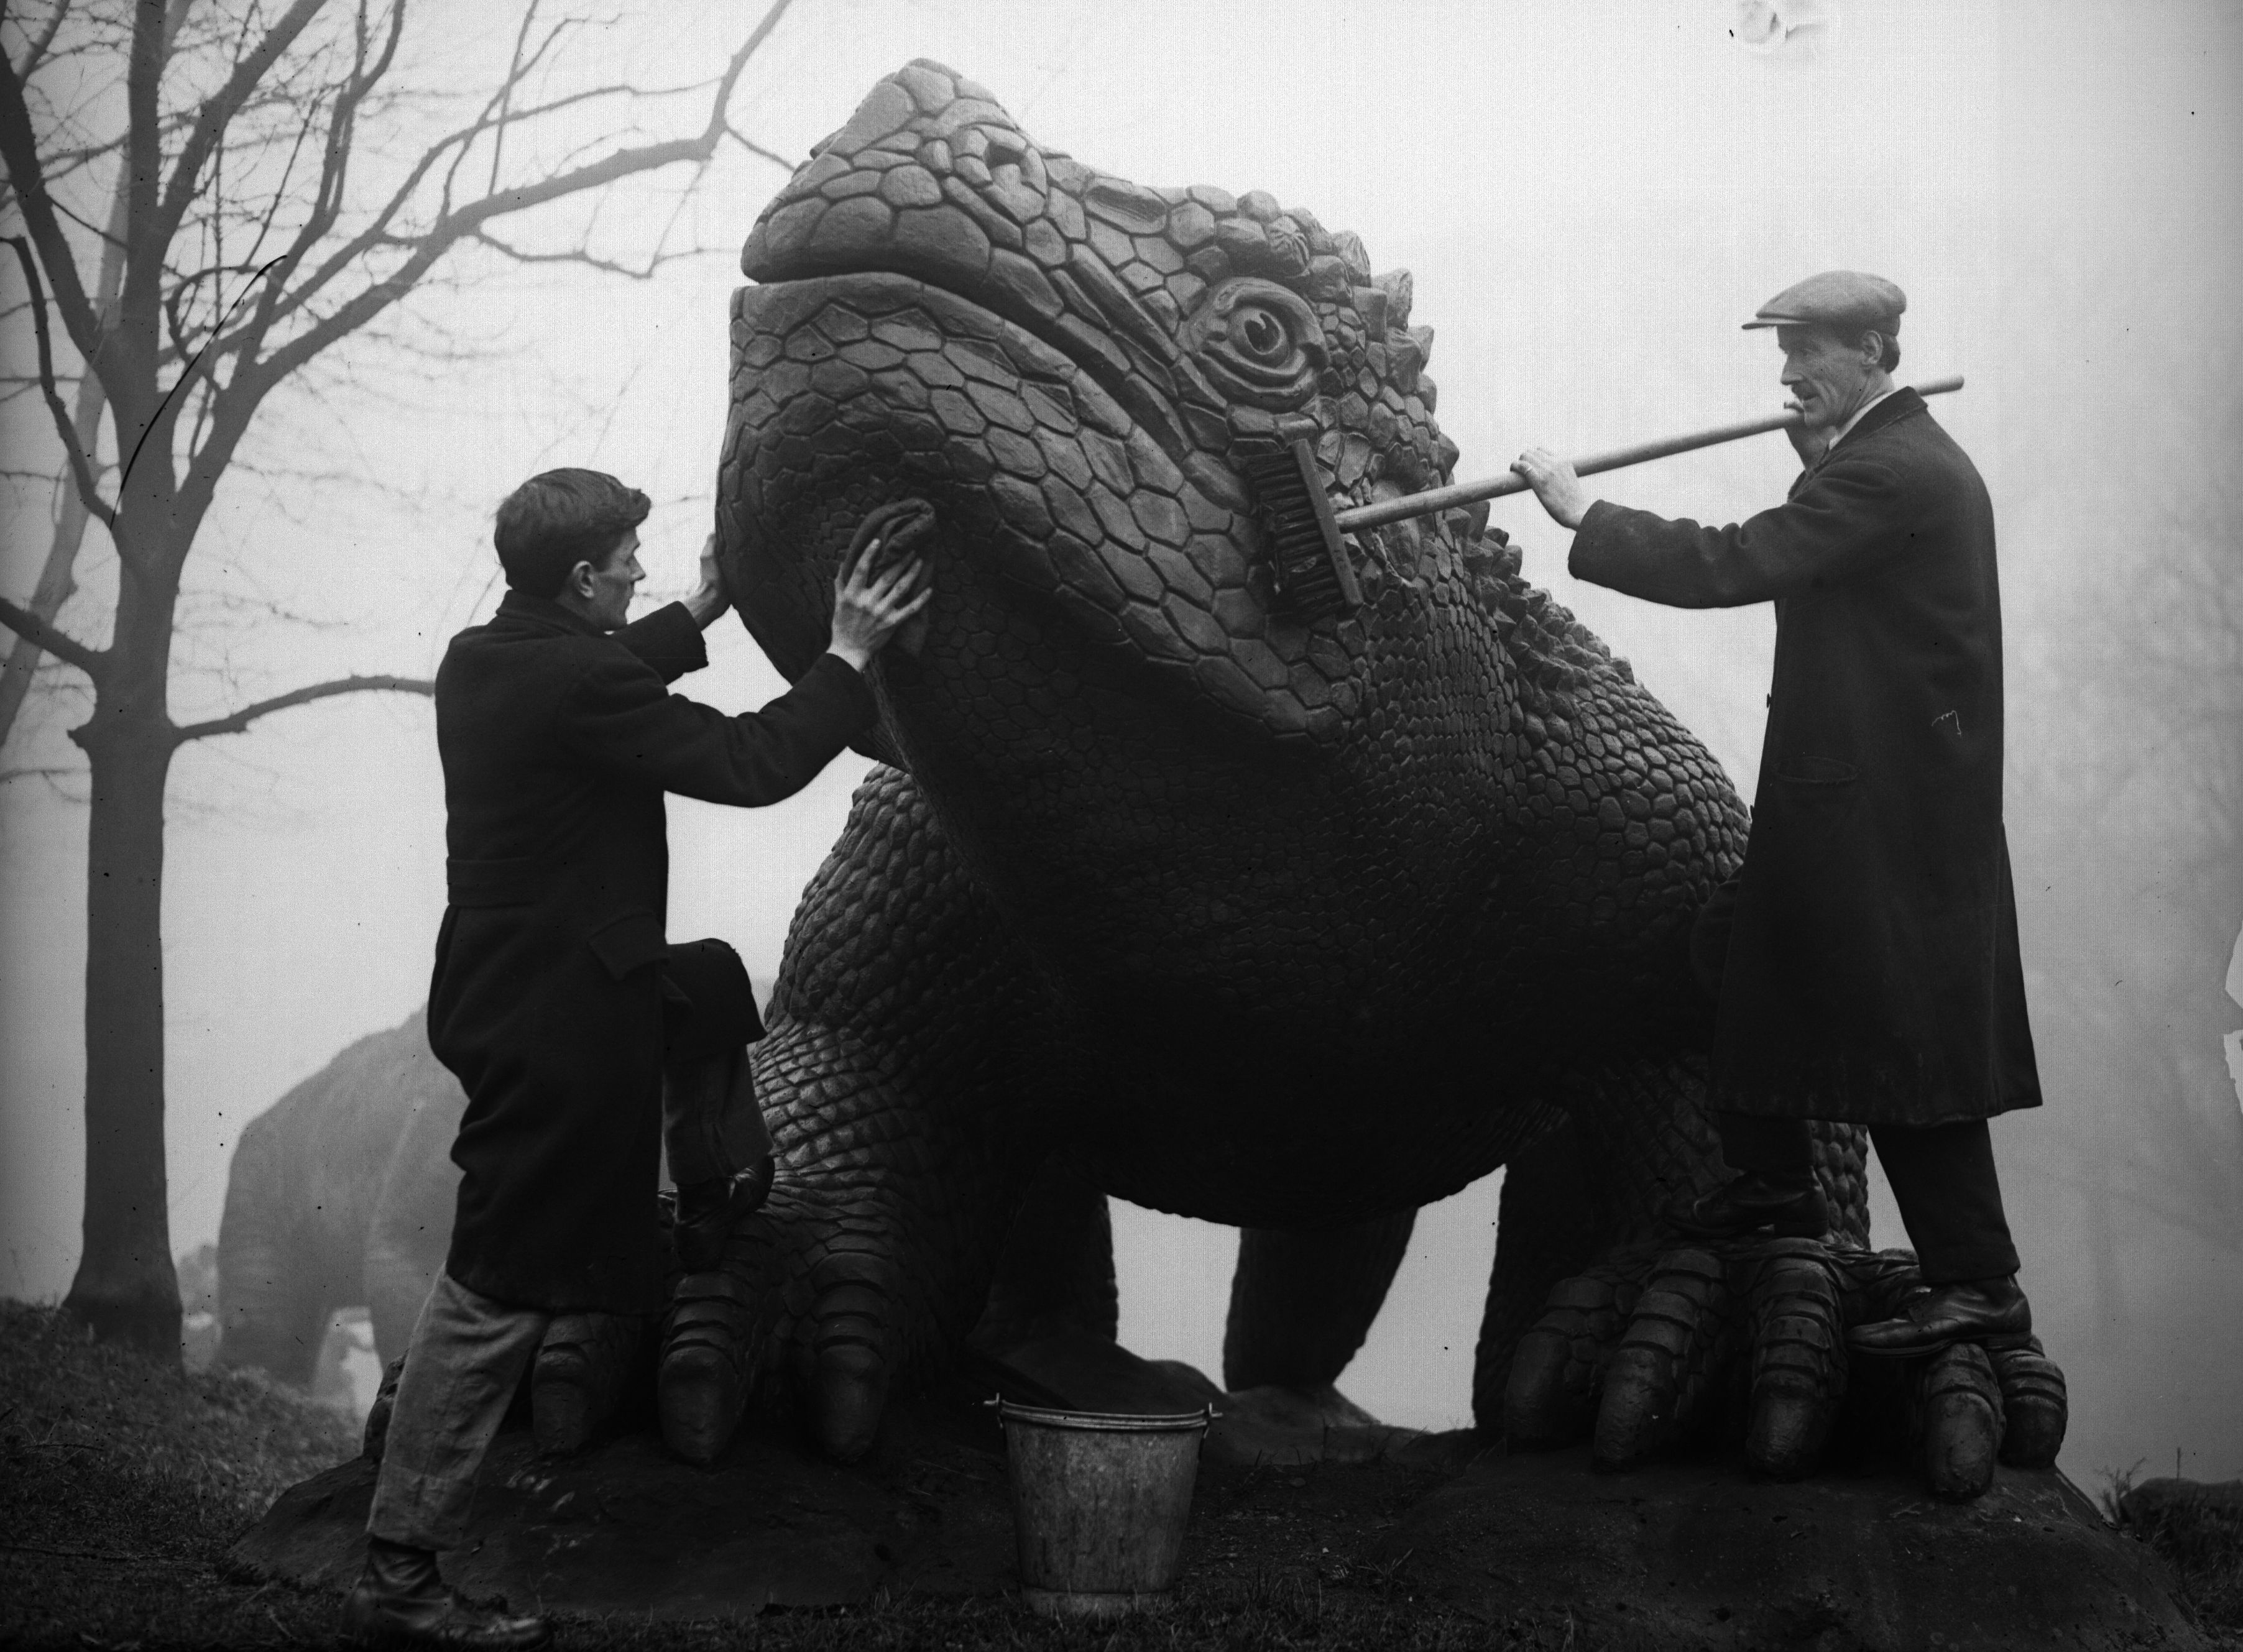 Cleaning a dinosaur statue at Crystal Palace